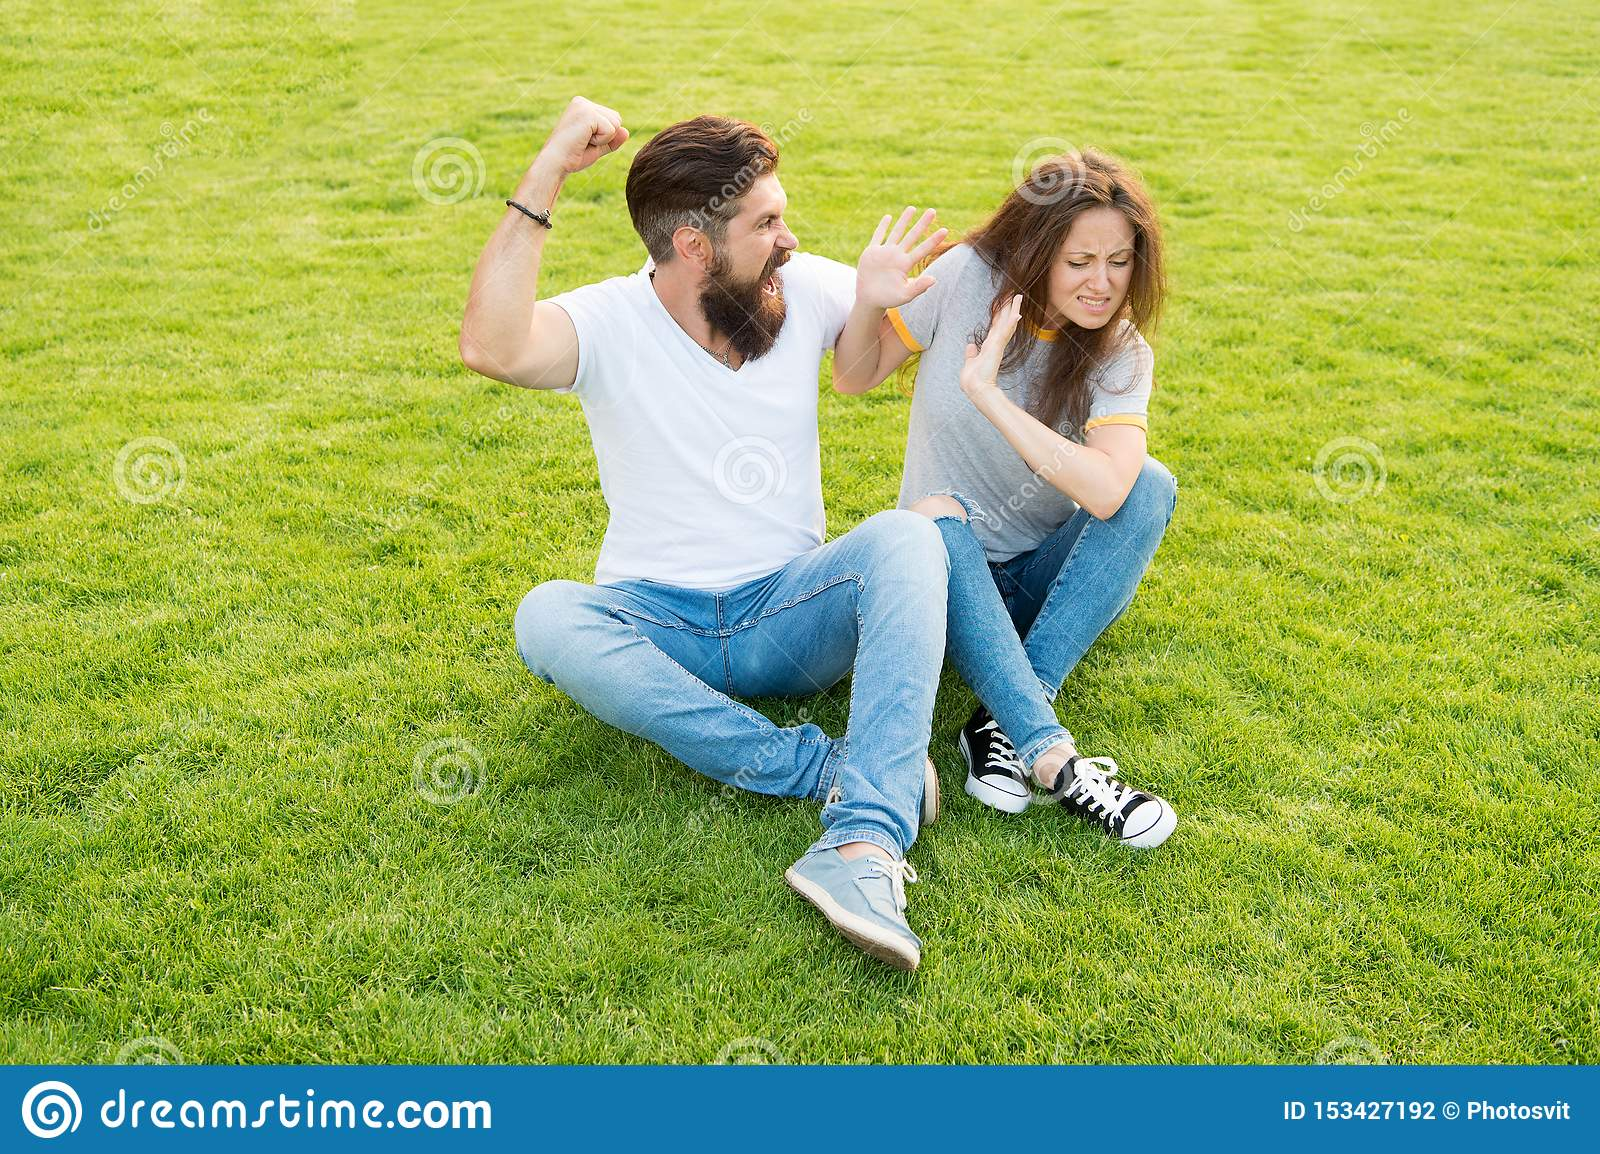 Married couple do not get along with each other. divorce. woman afraid of her aggressive boyfriend. bearded man beating